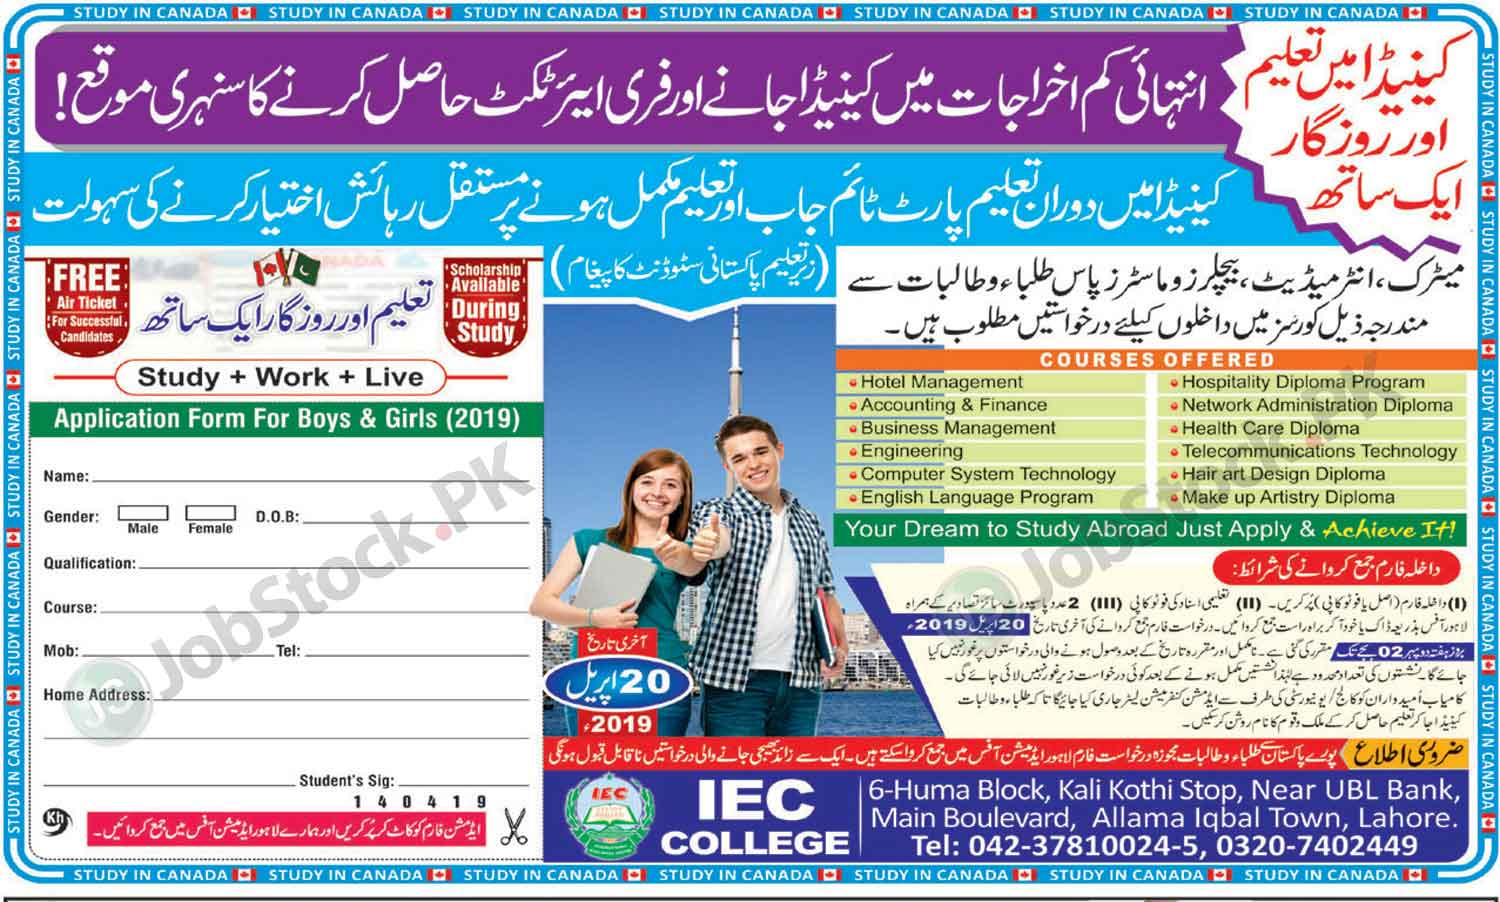 Free Study in Canada for Pakistani Student in 2019 Download Application Form